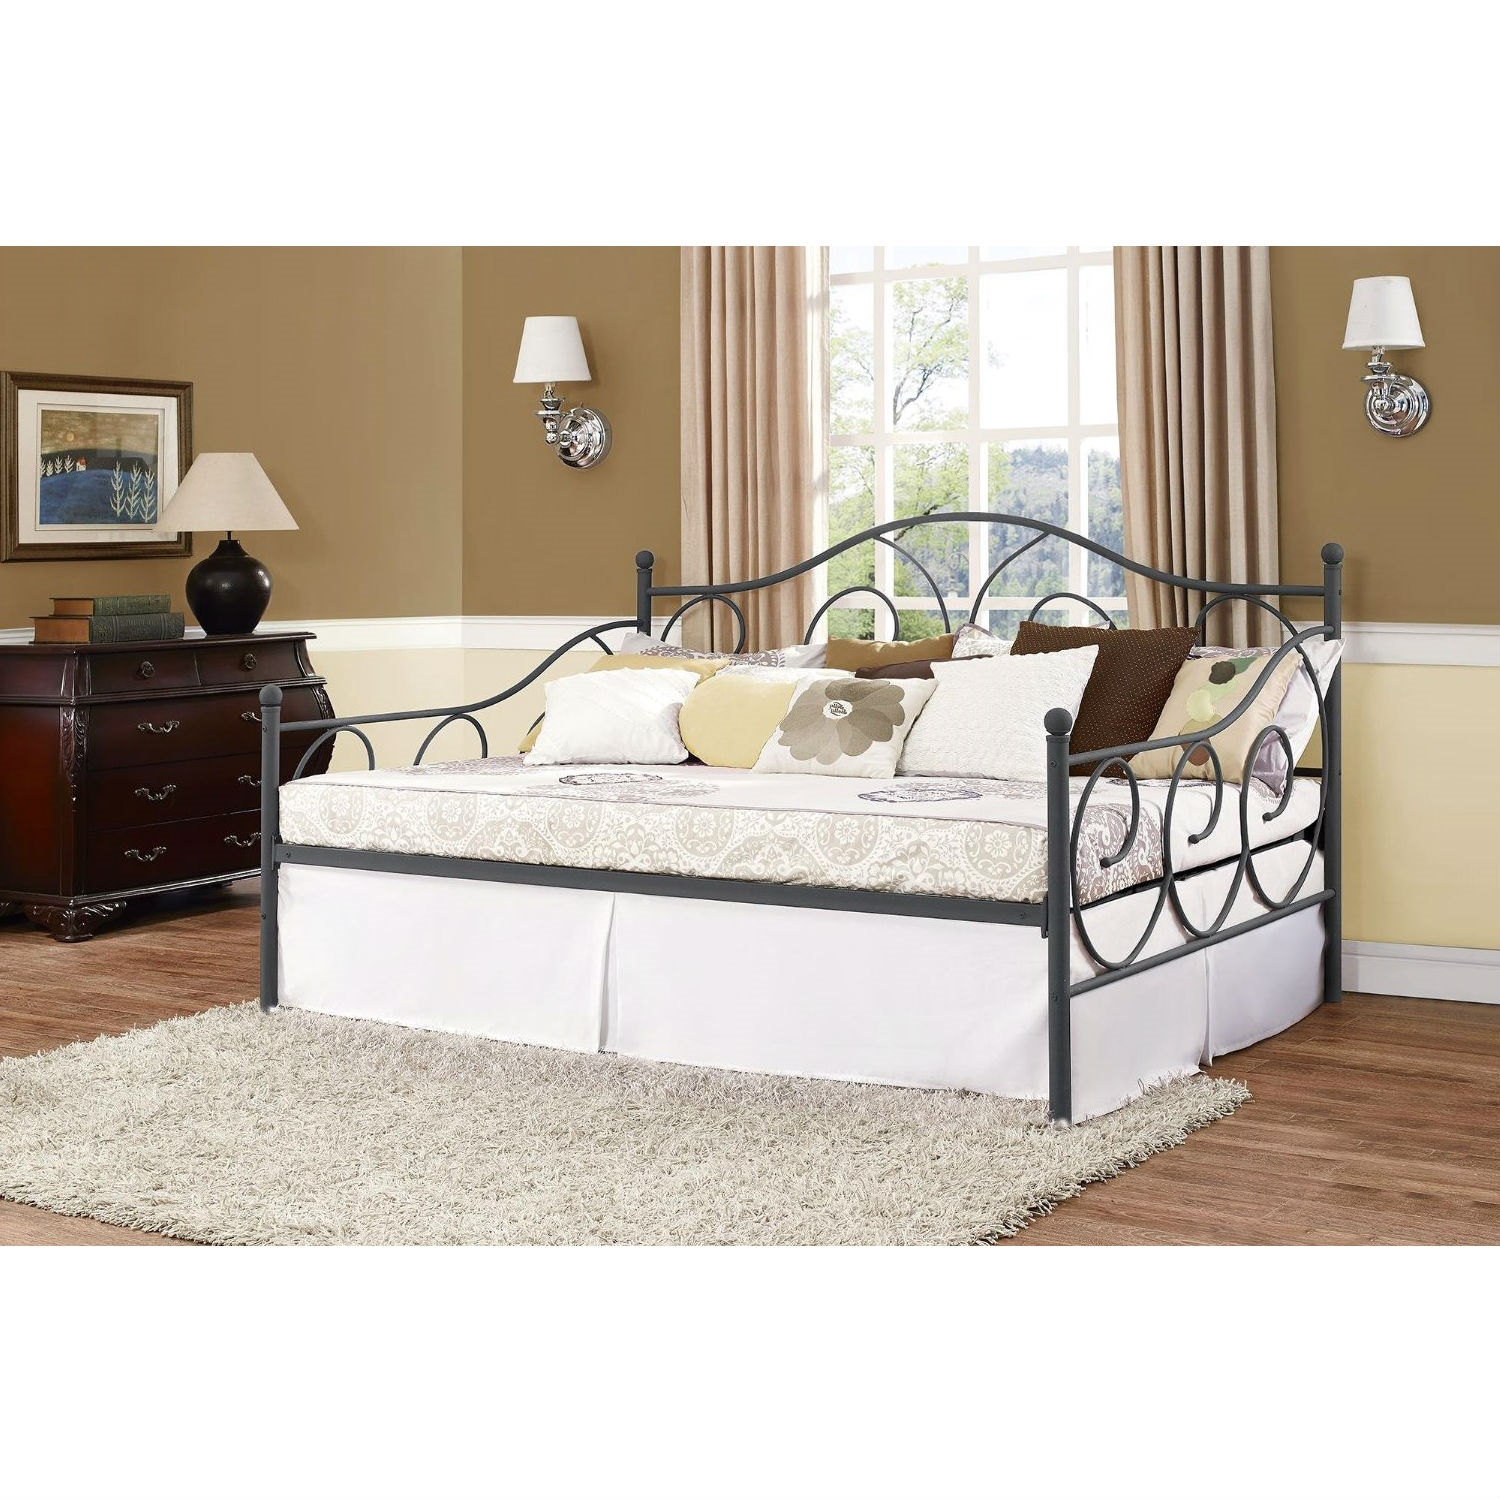 Full size Metal Daybed Frame Contemporary Design Day Bed in Bronze ...